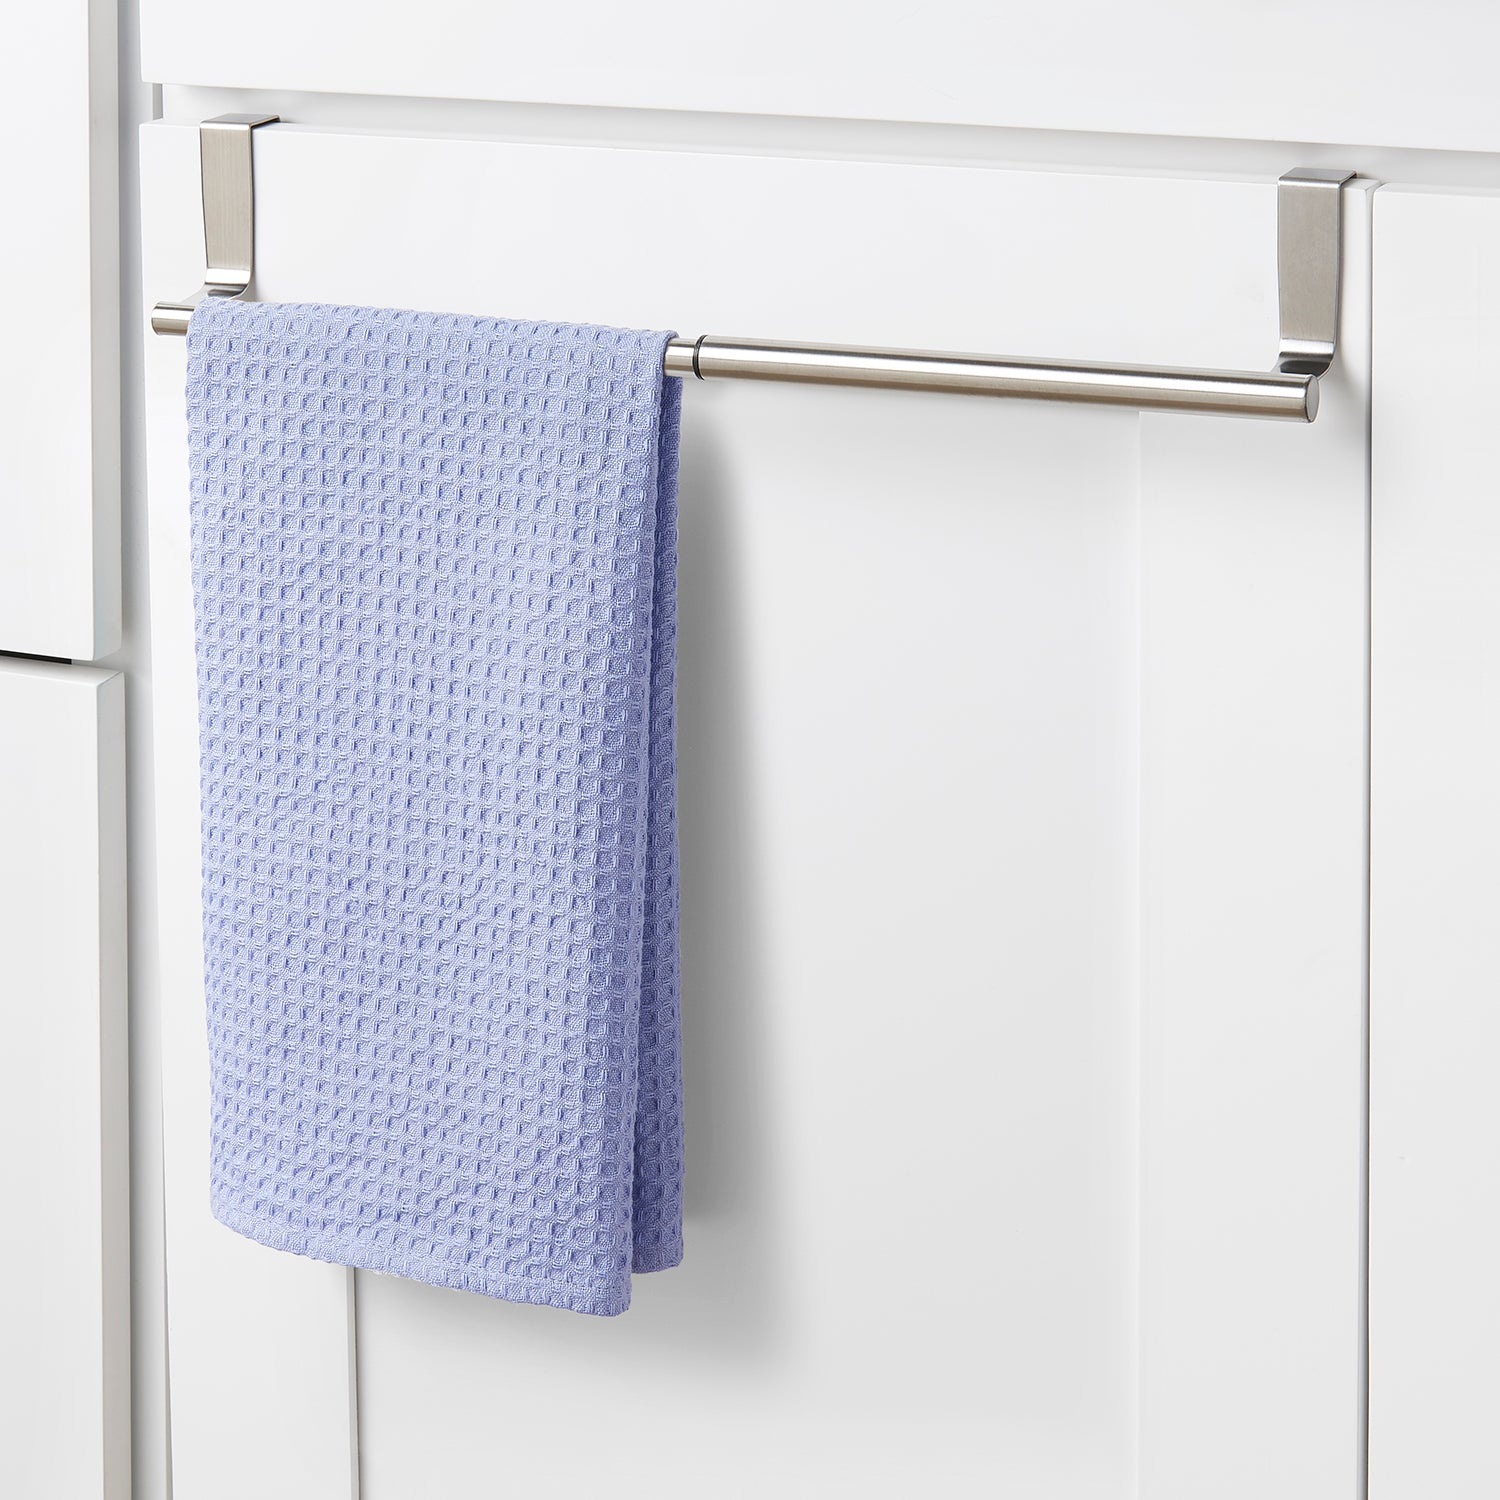 Over the Cabinet Door Expandable Towel Bar